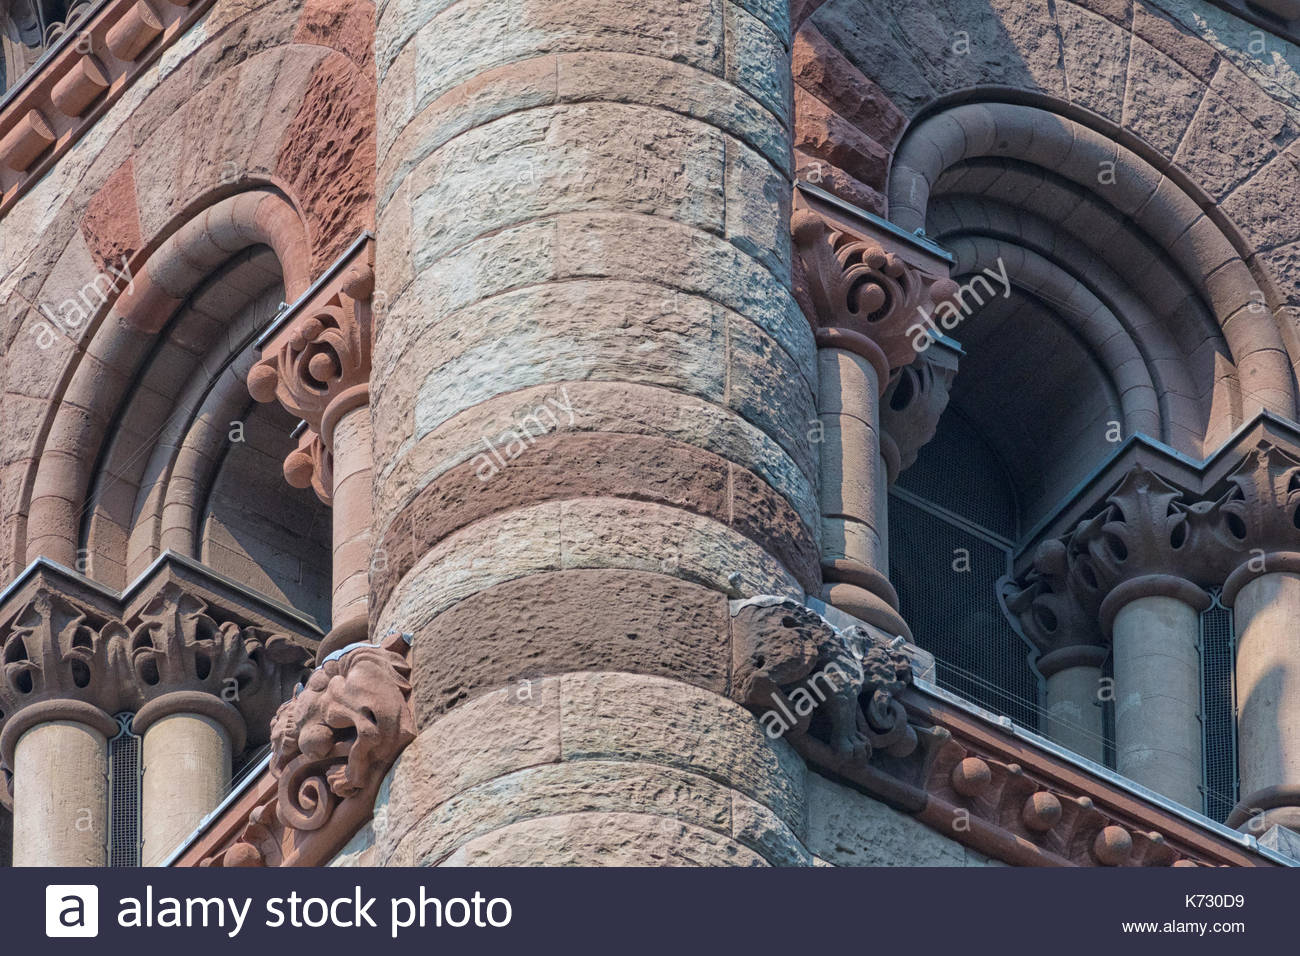 Old City Hall Richardsonian Romanesque Revival architectural details. Column and windows with arches.  The red stone old building is a tourist attract - Stock Image